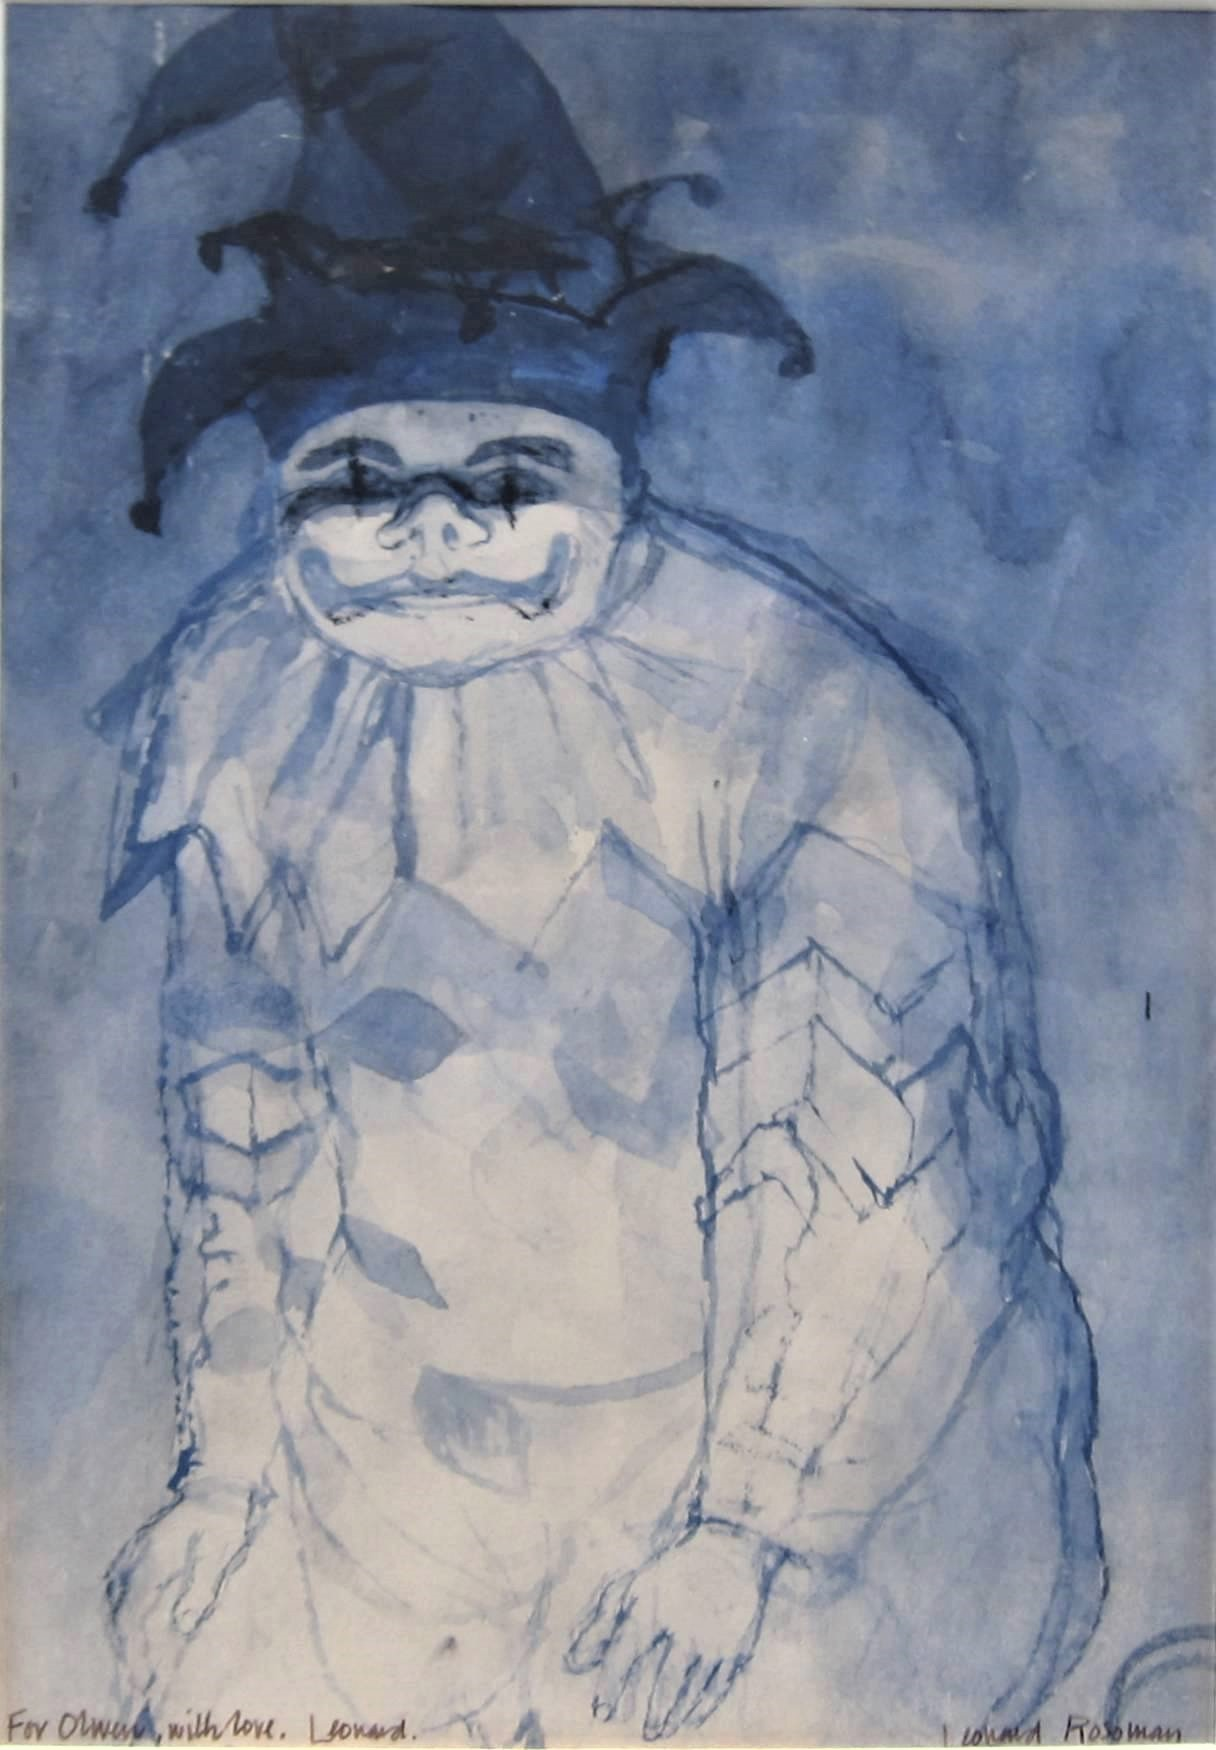 LEONARD ROSOMAN R.A. [1913-2012]. The Fool. watercolour and ink on paper. signed. 25 x 17 cm [